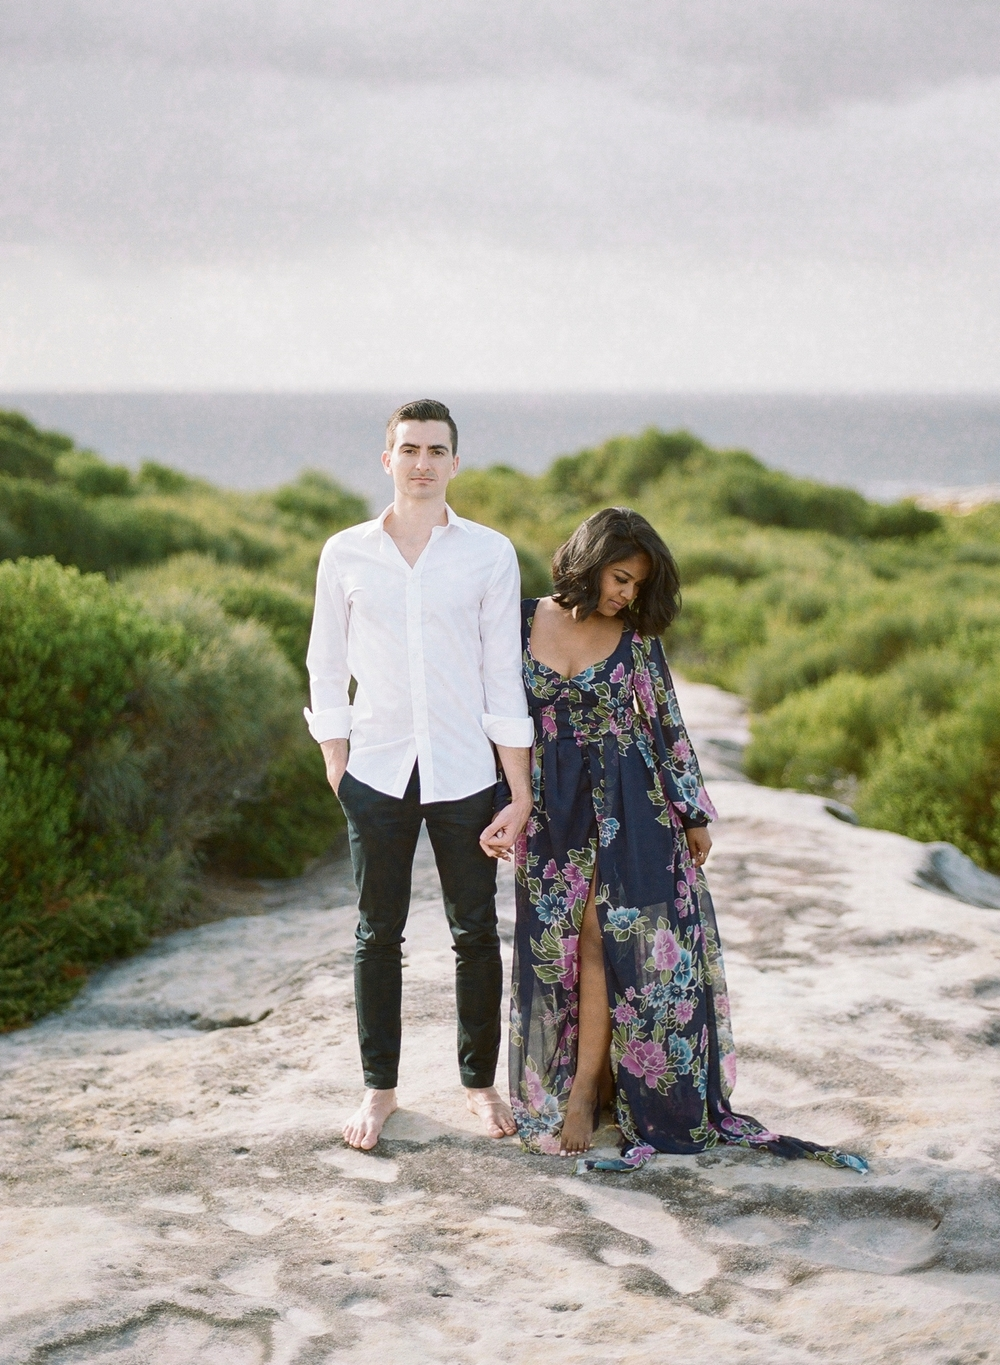 Coastal Sydney couples session by Mr Edwards Photography_0737_1179.jpg